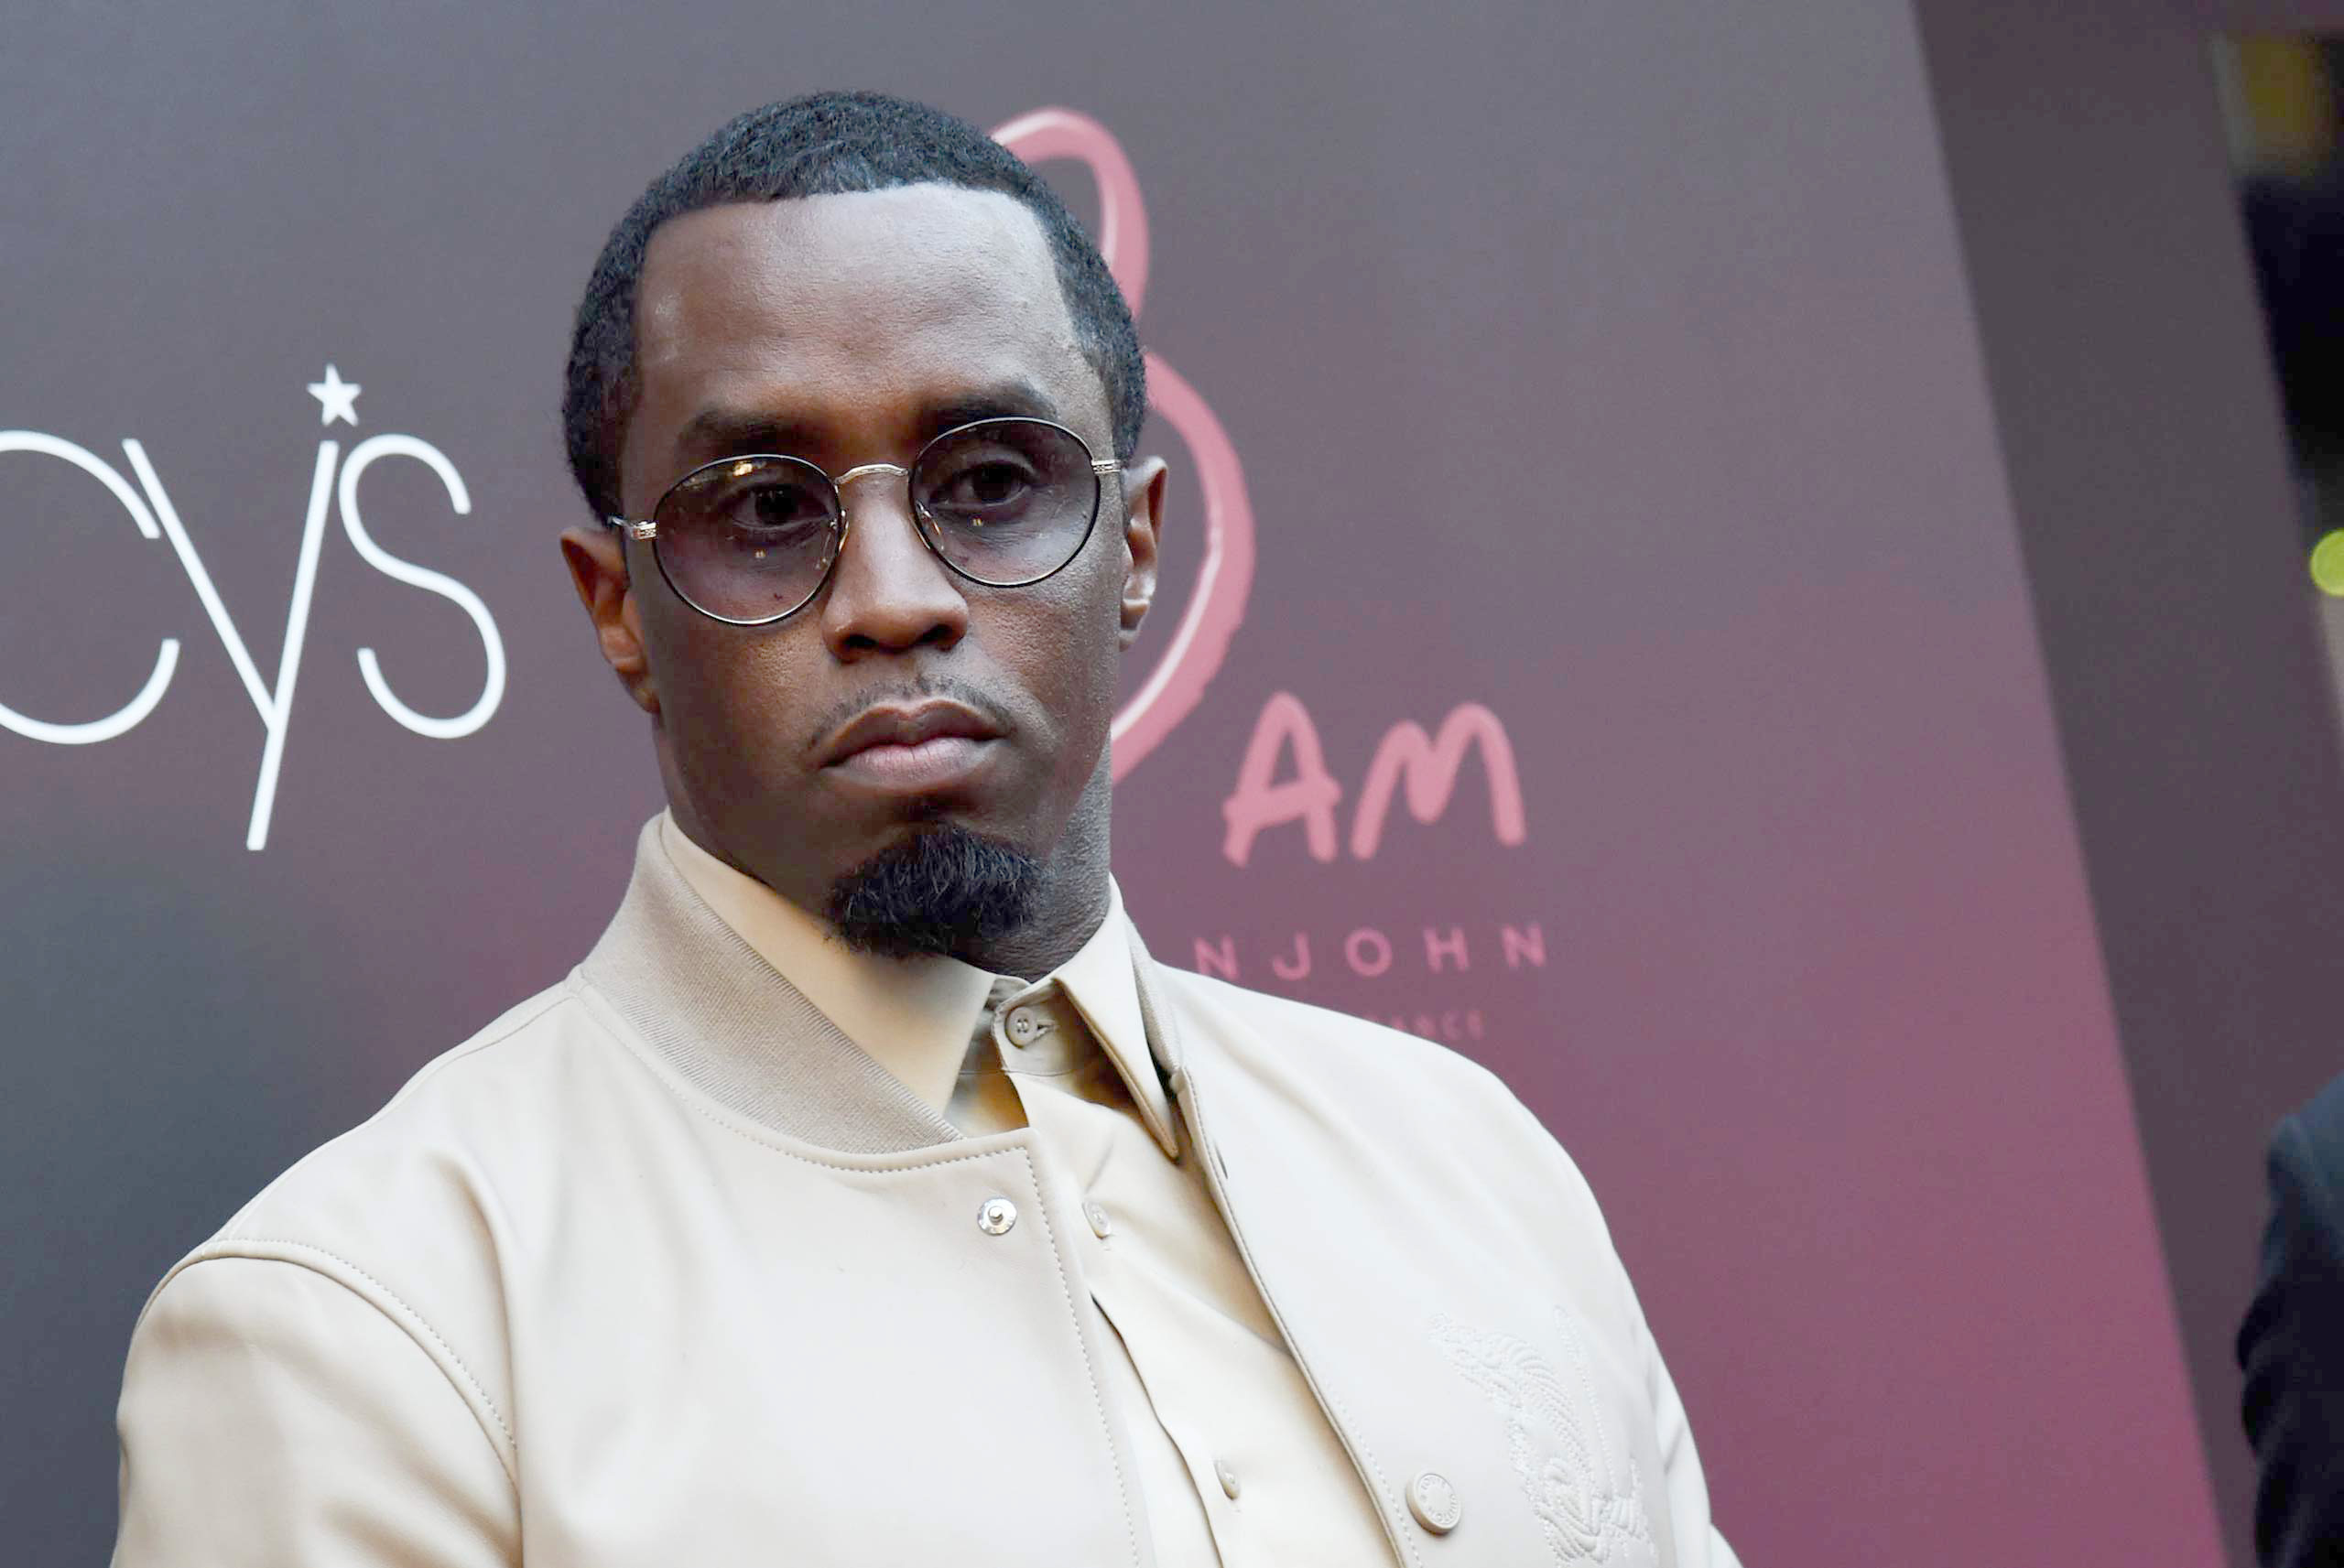 Sean 'Diddy Combs' attends the Sean  Diddy  Combs Fragrance Launch at Macy's Herald Square in New York on May 6, 2015